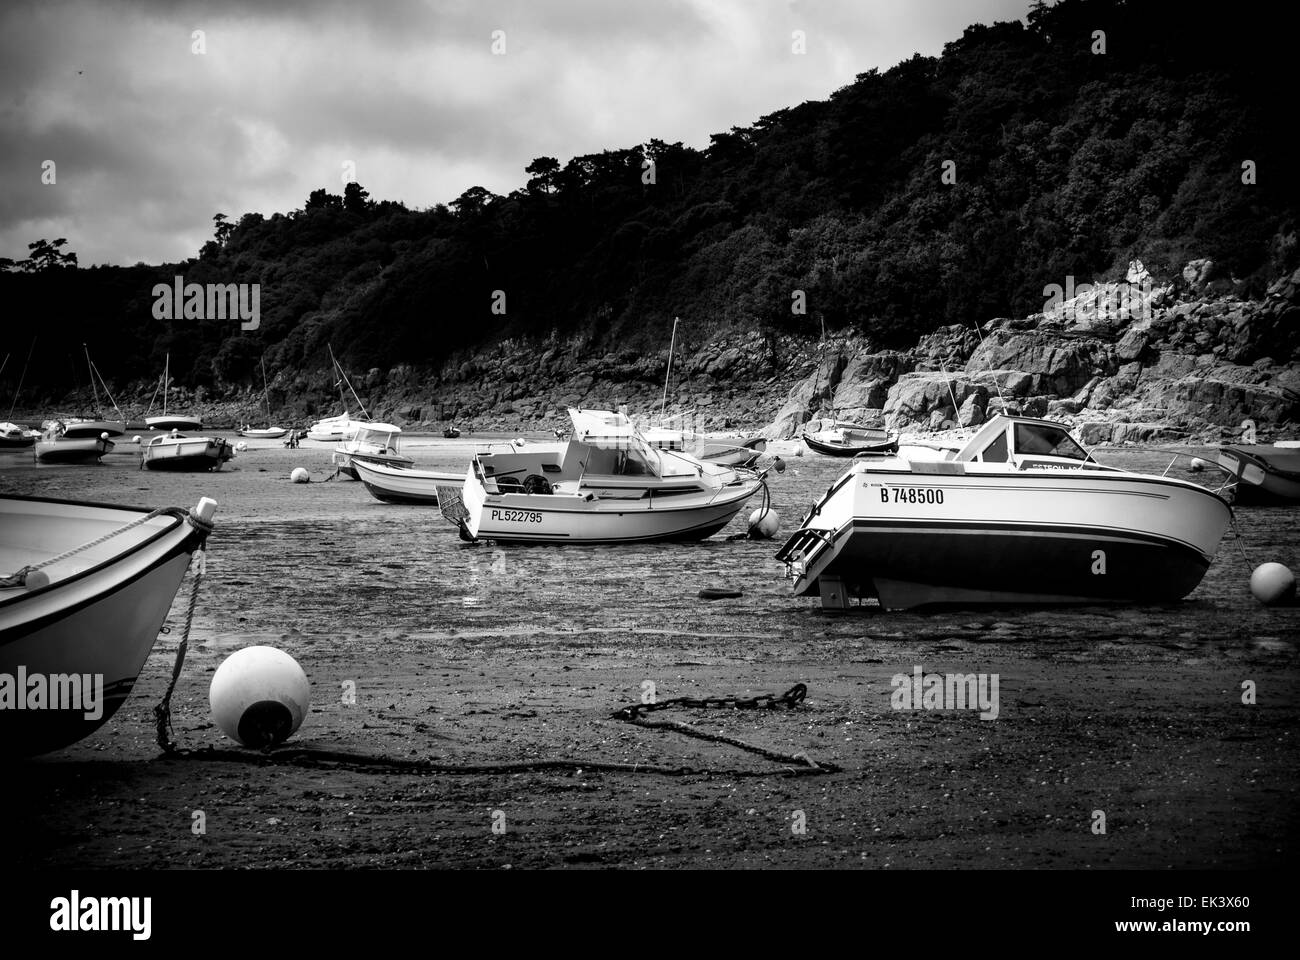 boats in harbor at low-tide - Stock Image